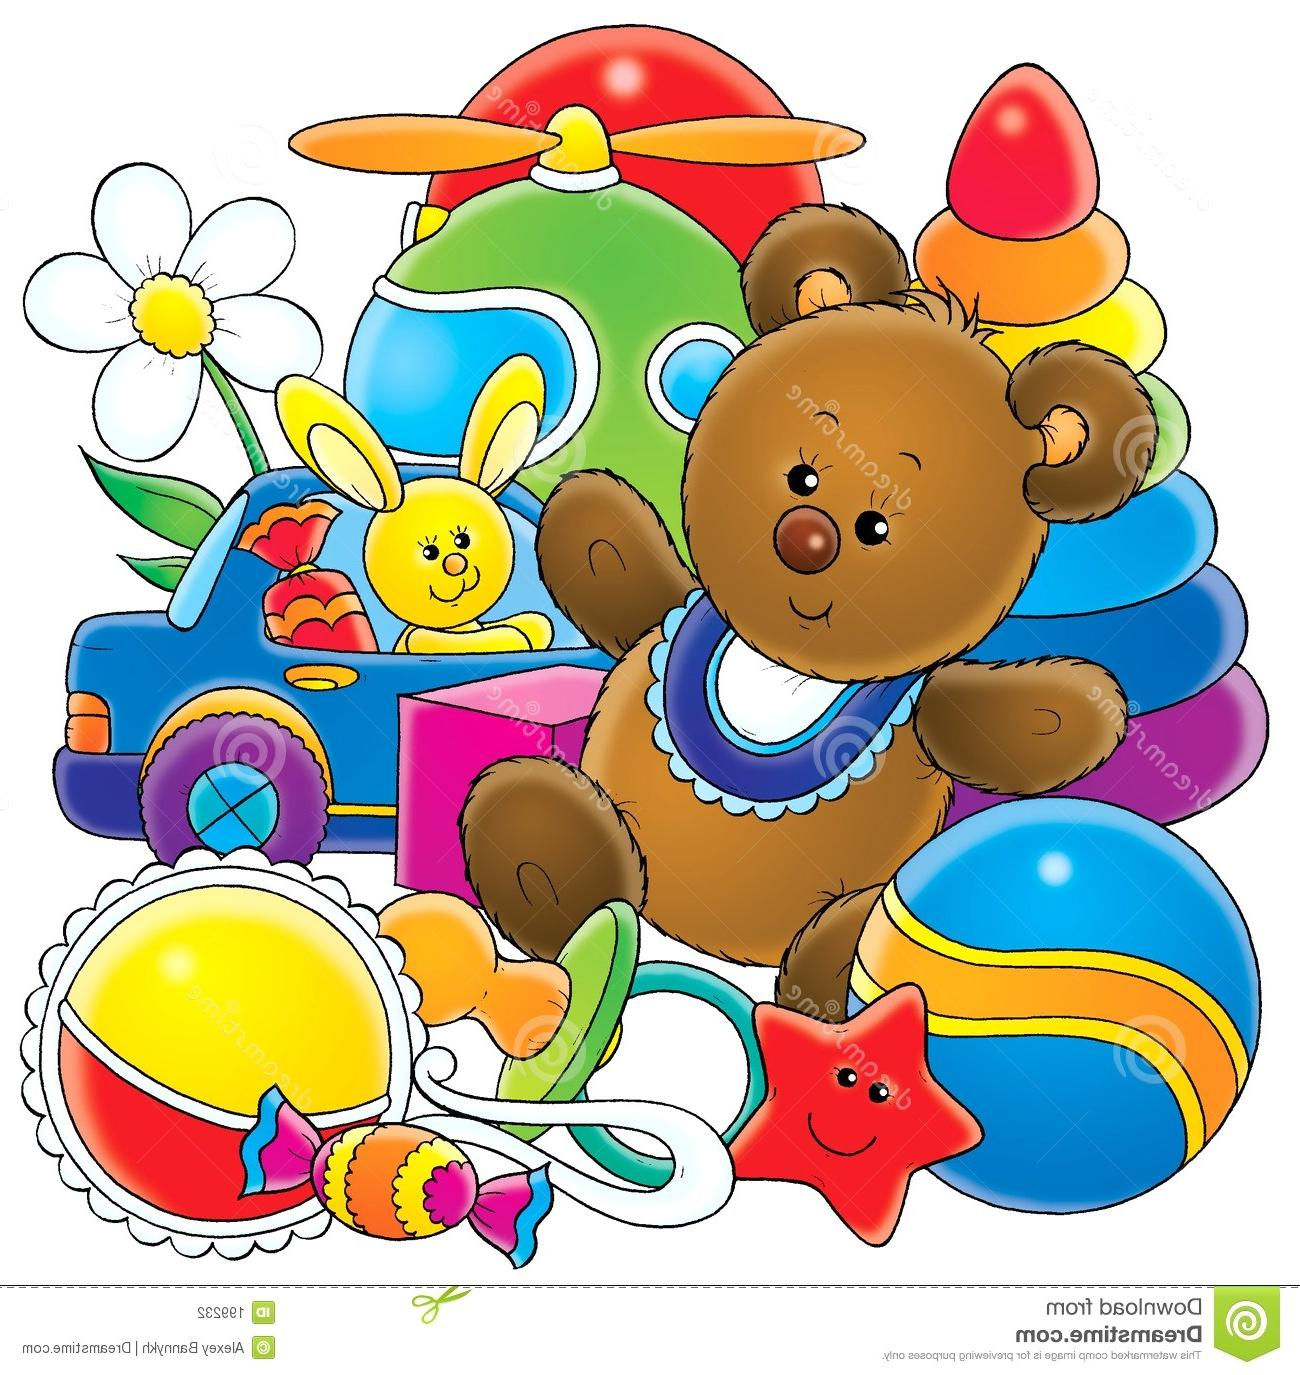 Clipart images of toys graphic library Best Toys Clip Art File Free » Free Vector Art, Images, Graphics ... graphic library